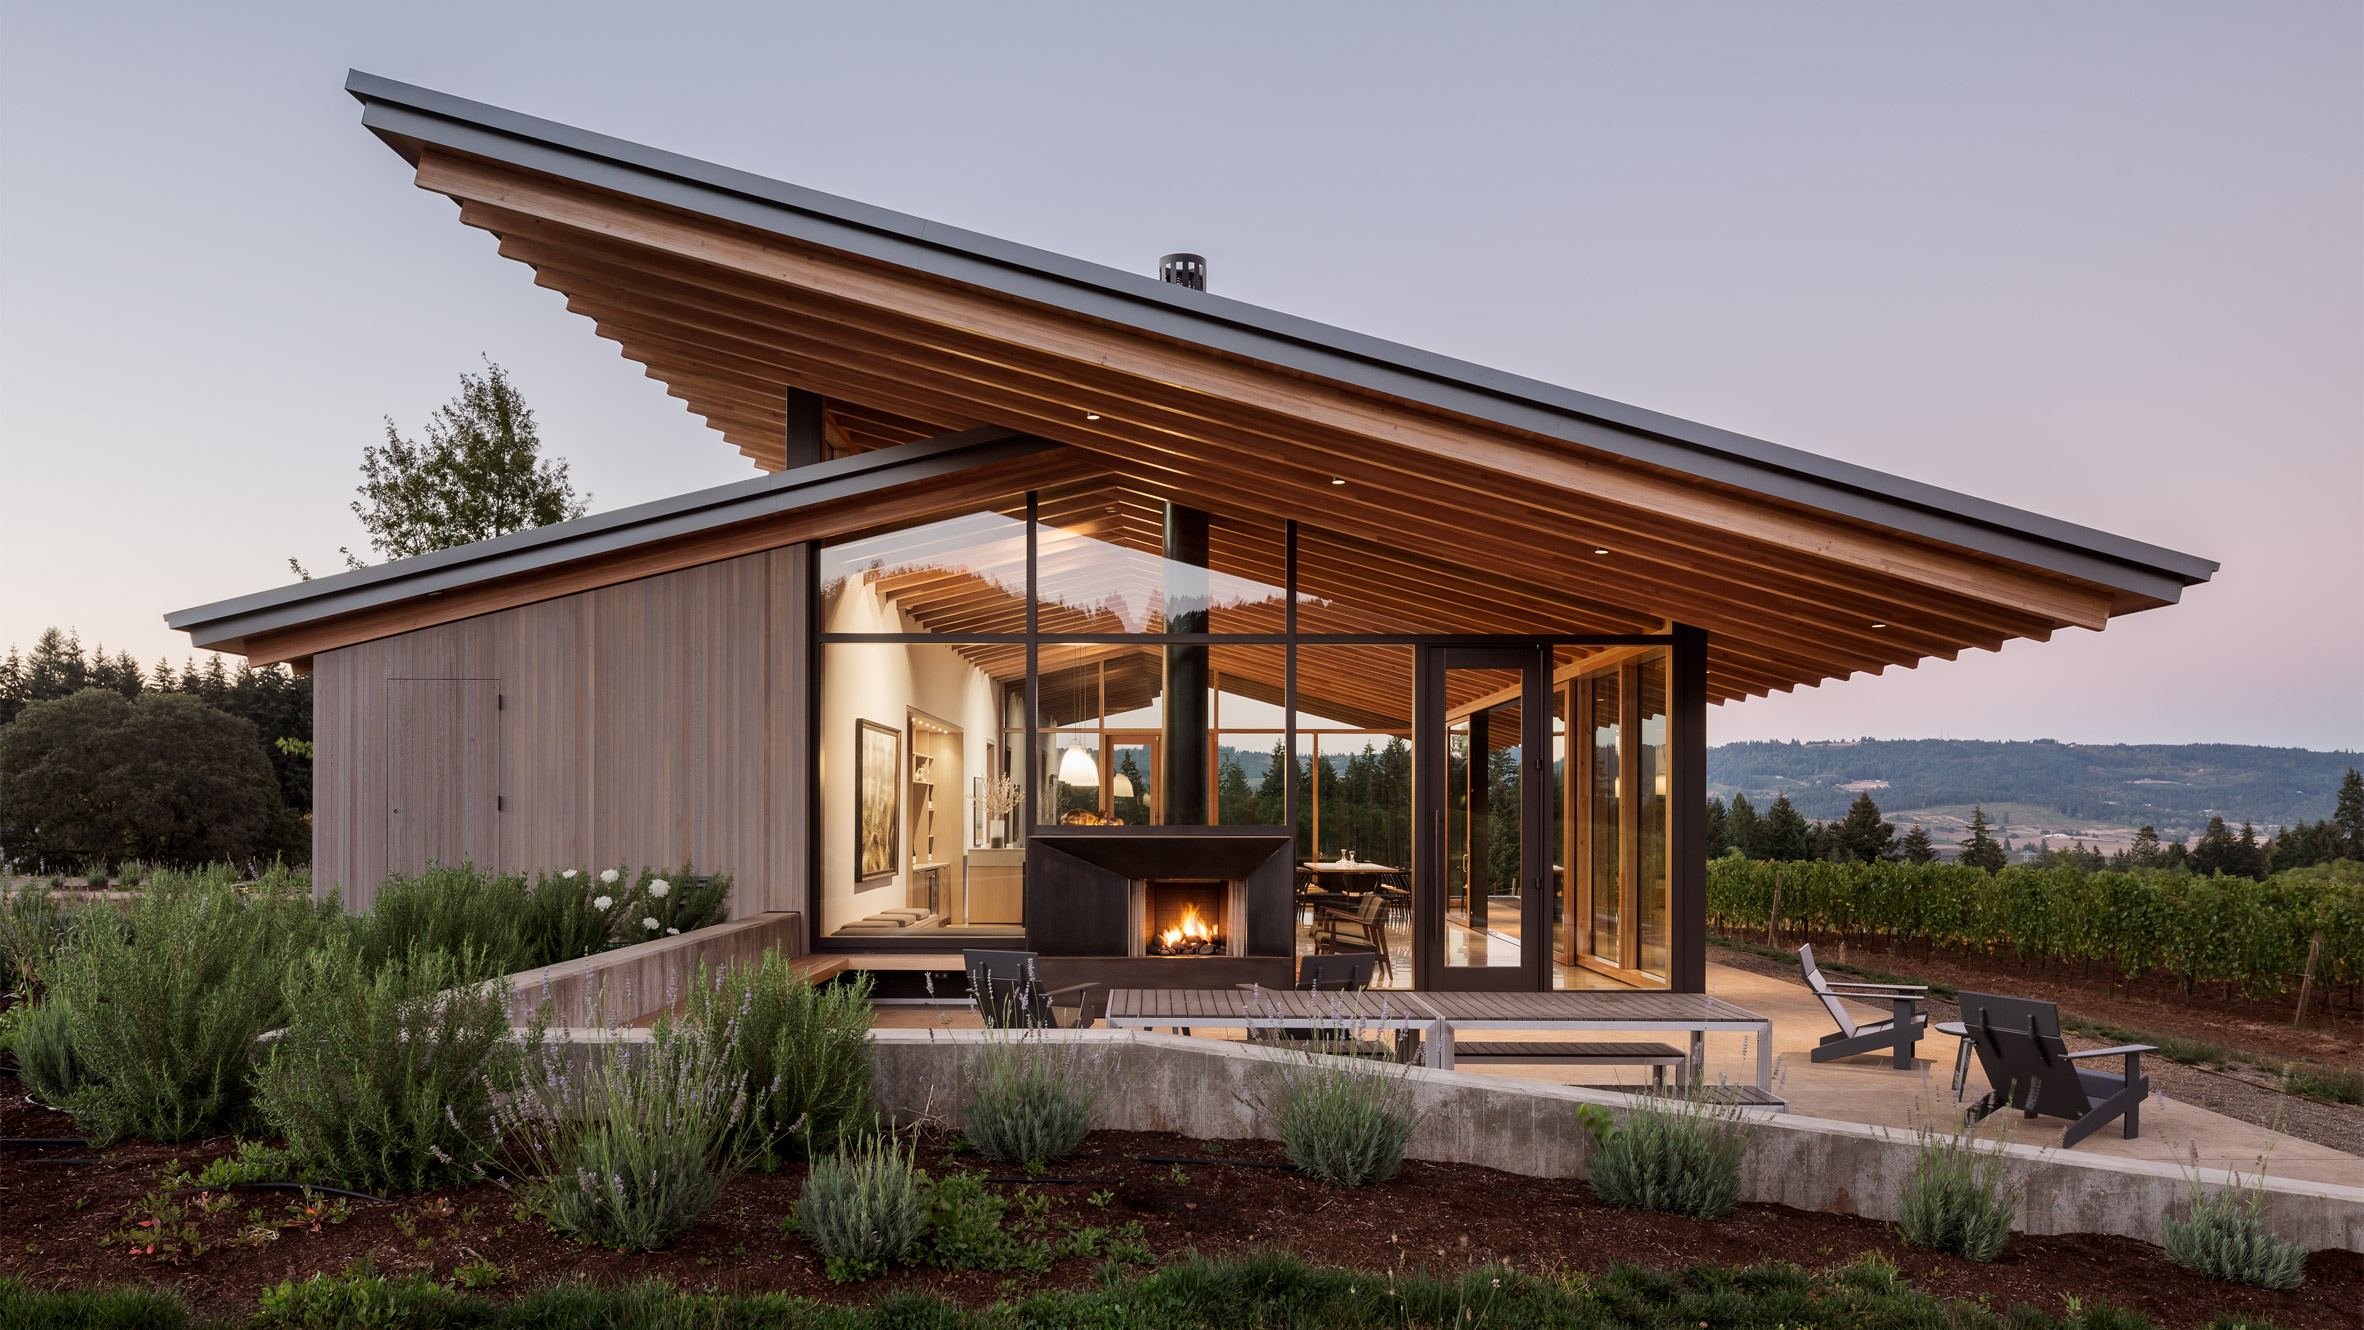 Lever Architecture designs Stunning Wine Tasting Room in Oregon lever architecture Lever Architecture designs Stunning Wine Tasting Room in Oregon Lever Architecture designs Stunning Wine Tasting Room in Oregon